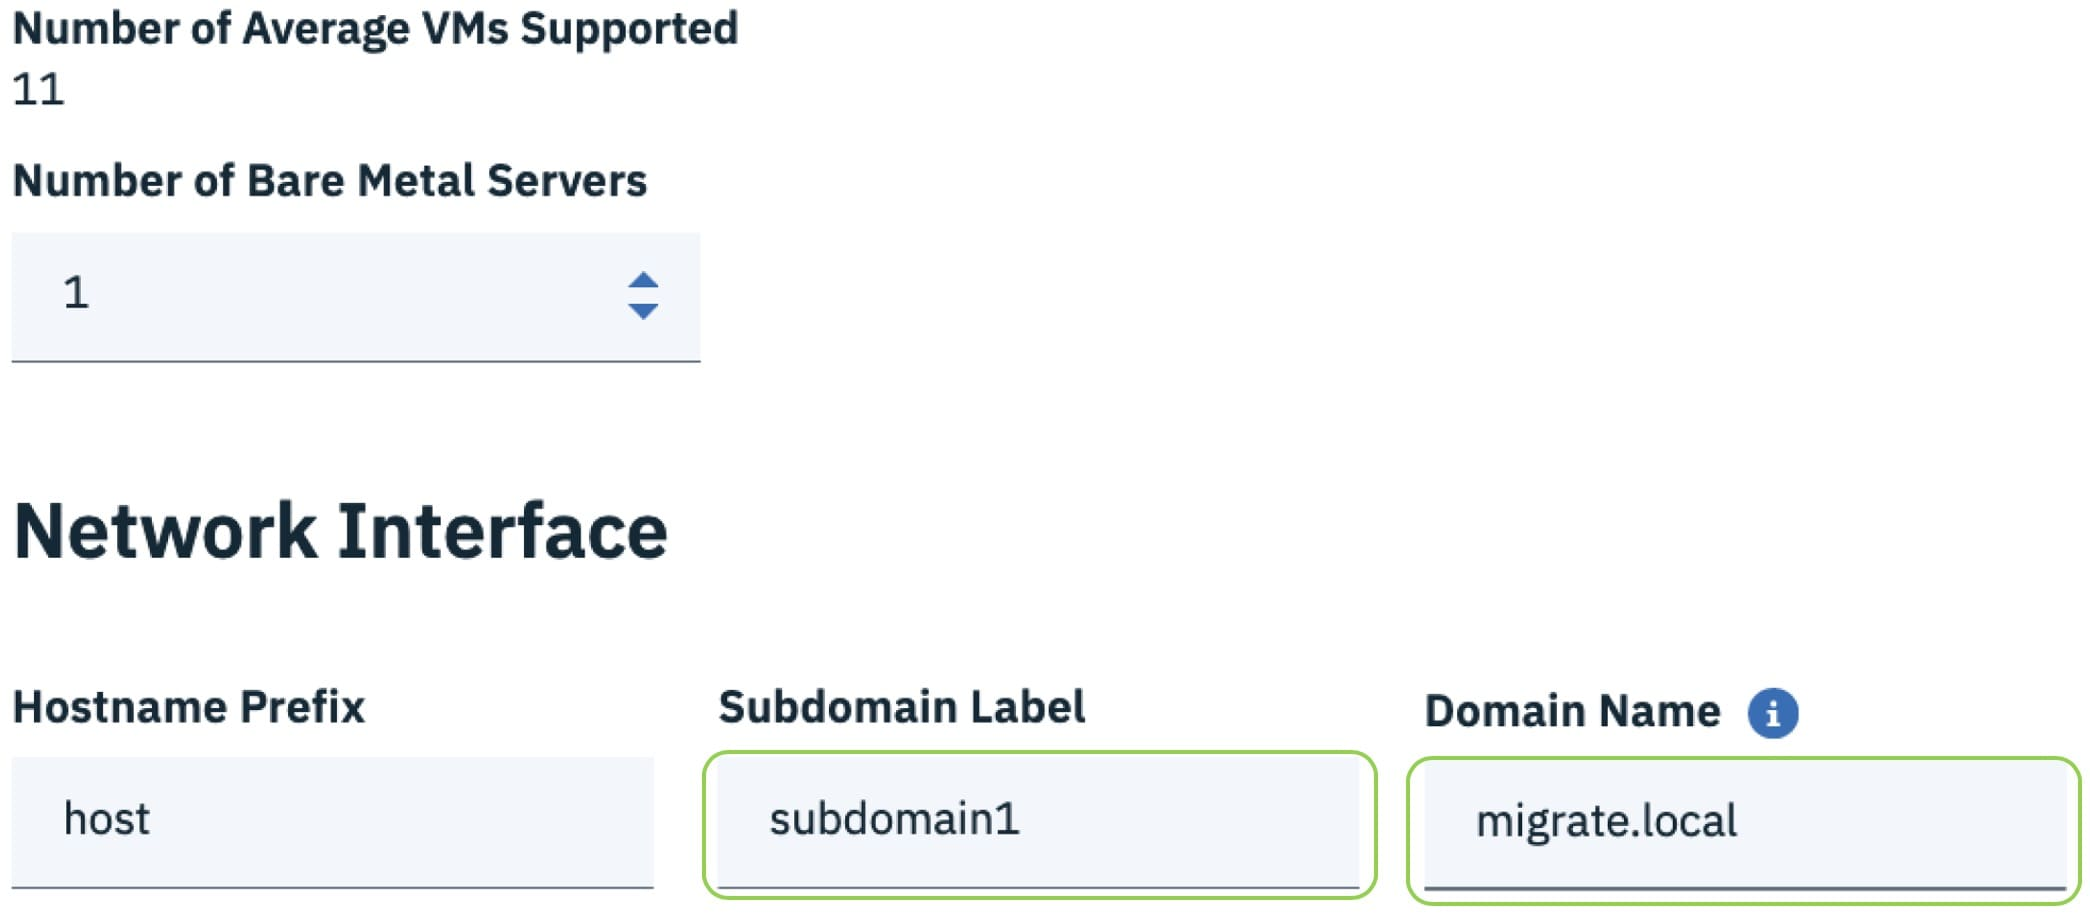 Scroll down to Network Interface and name your Subdomain Label (e.g.,  subdomain1) and Domain Name (e.g., migrate.local).